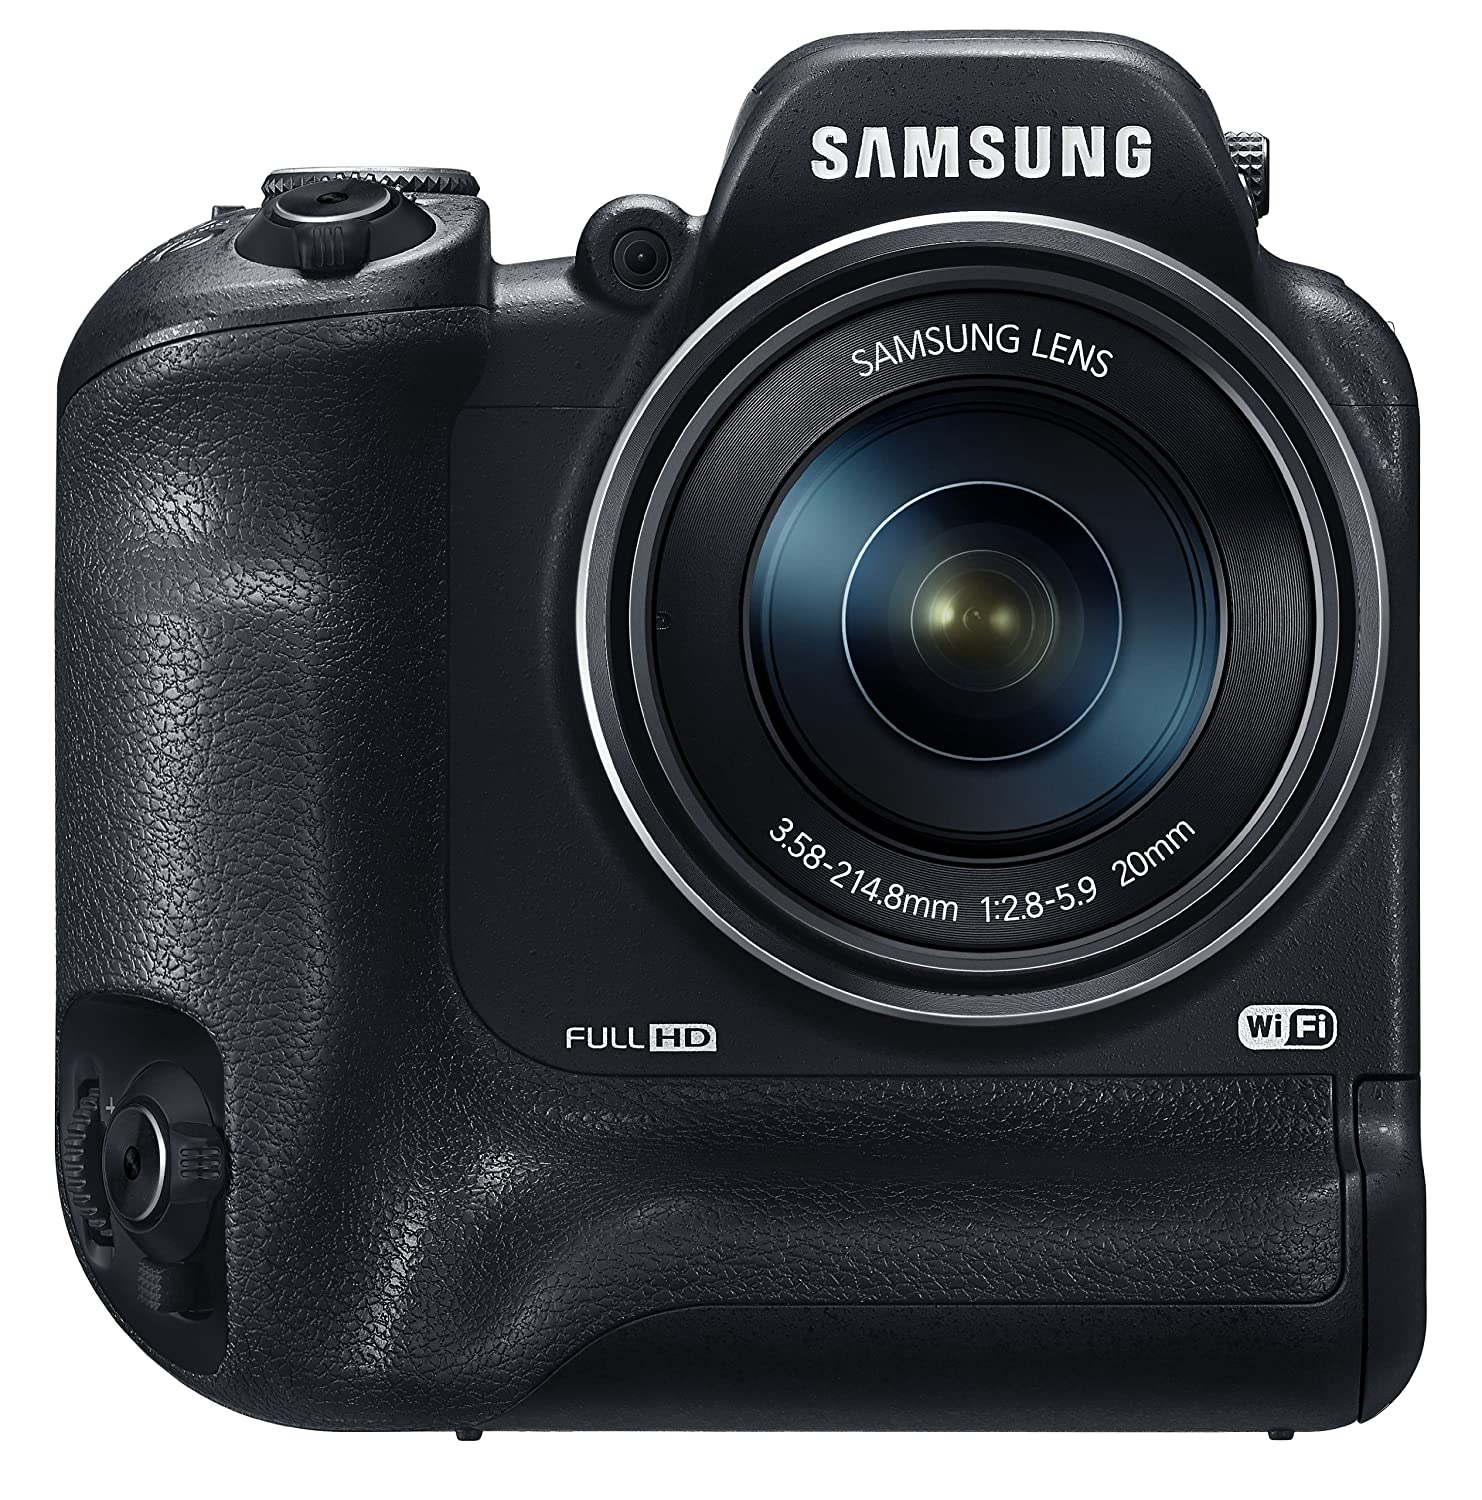 """Amazon.com : Samsung WB2200F 16.3MP CMOS Smart WiFi & NFC Digital Camera with 60x Optical Zoom, 3.0"""" LCD and 1080p HD Video (Black)"""